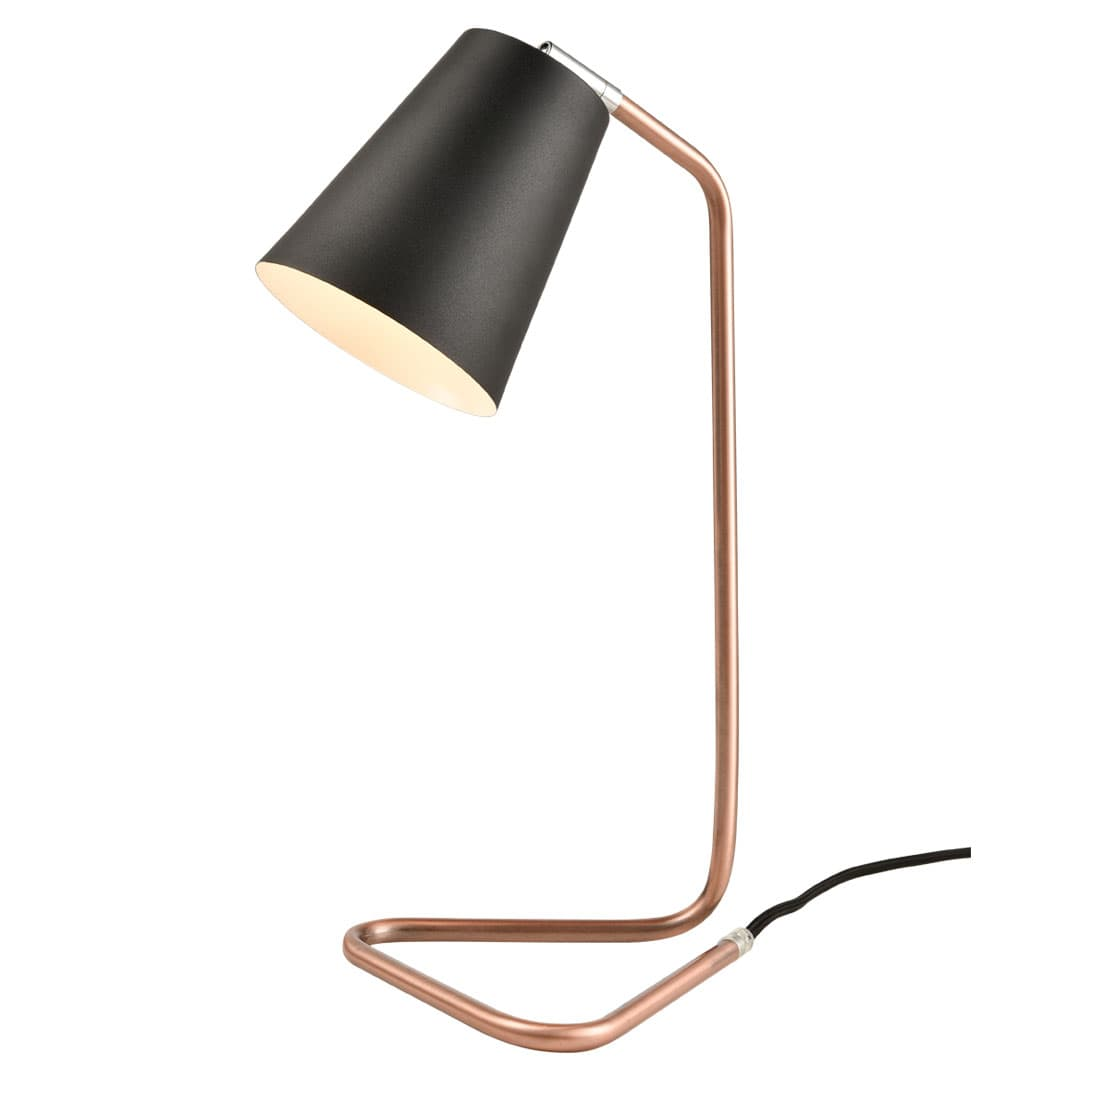 Modern Elegant Table Lamp Desk Light for Bedroom Reading Room with Cord & Switch Red Copper